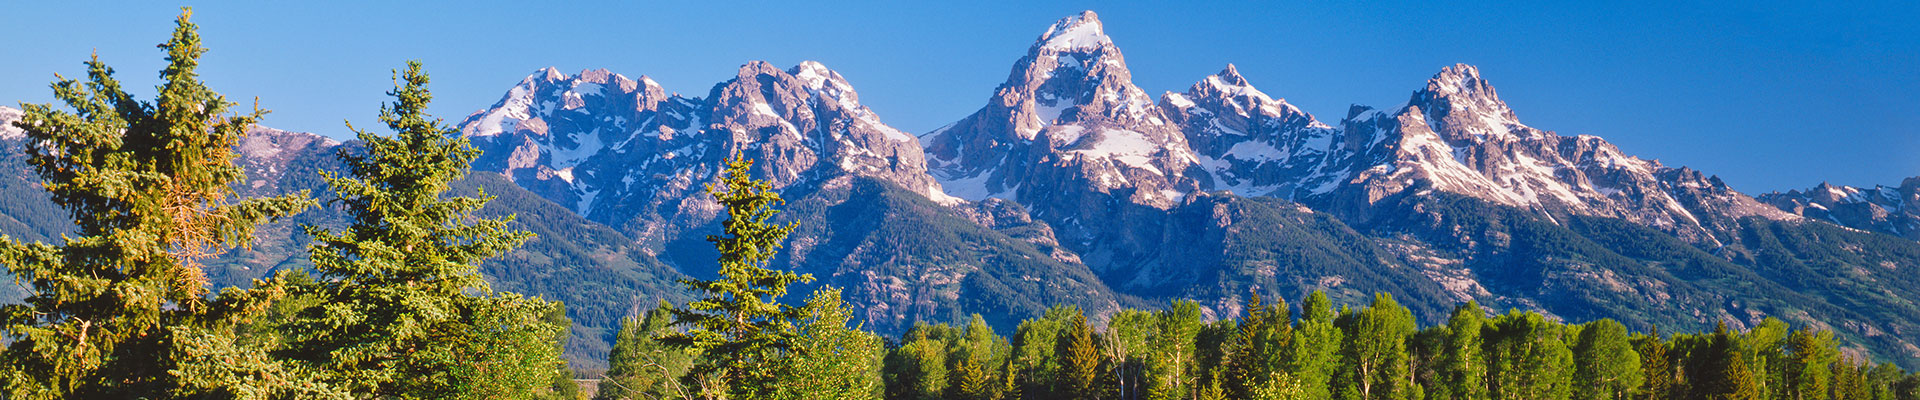 Fantasy RV Tours: 33 Day Rocky Mountain National Parks of the North (33URMP-071419)